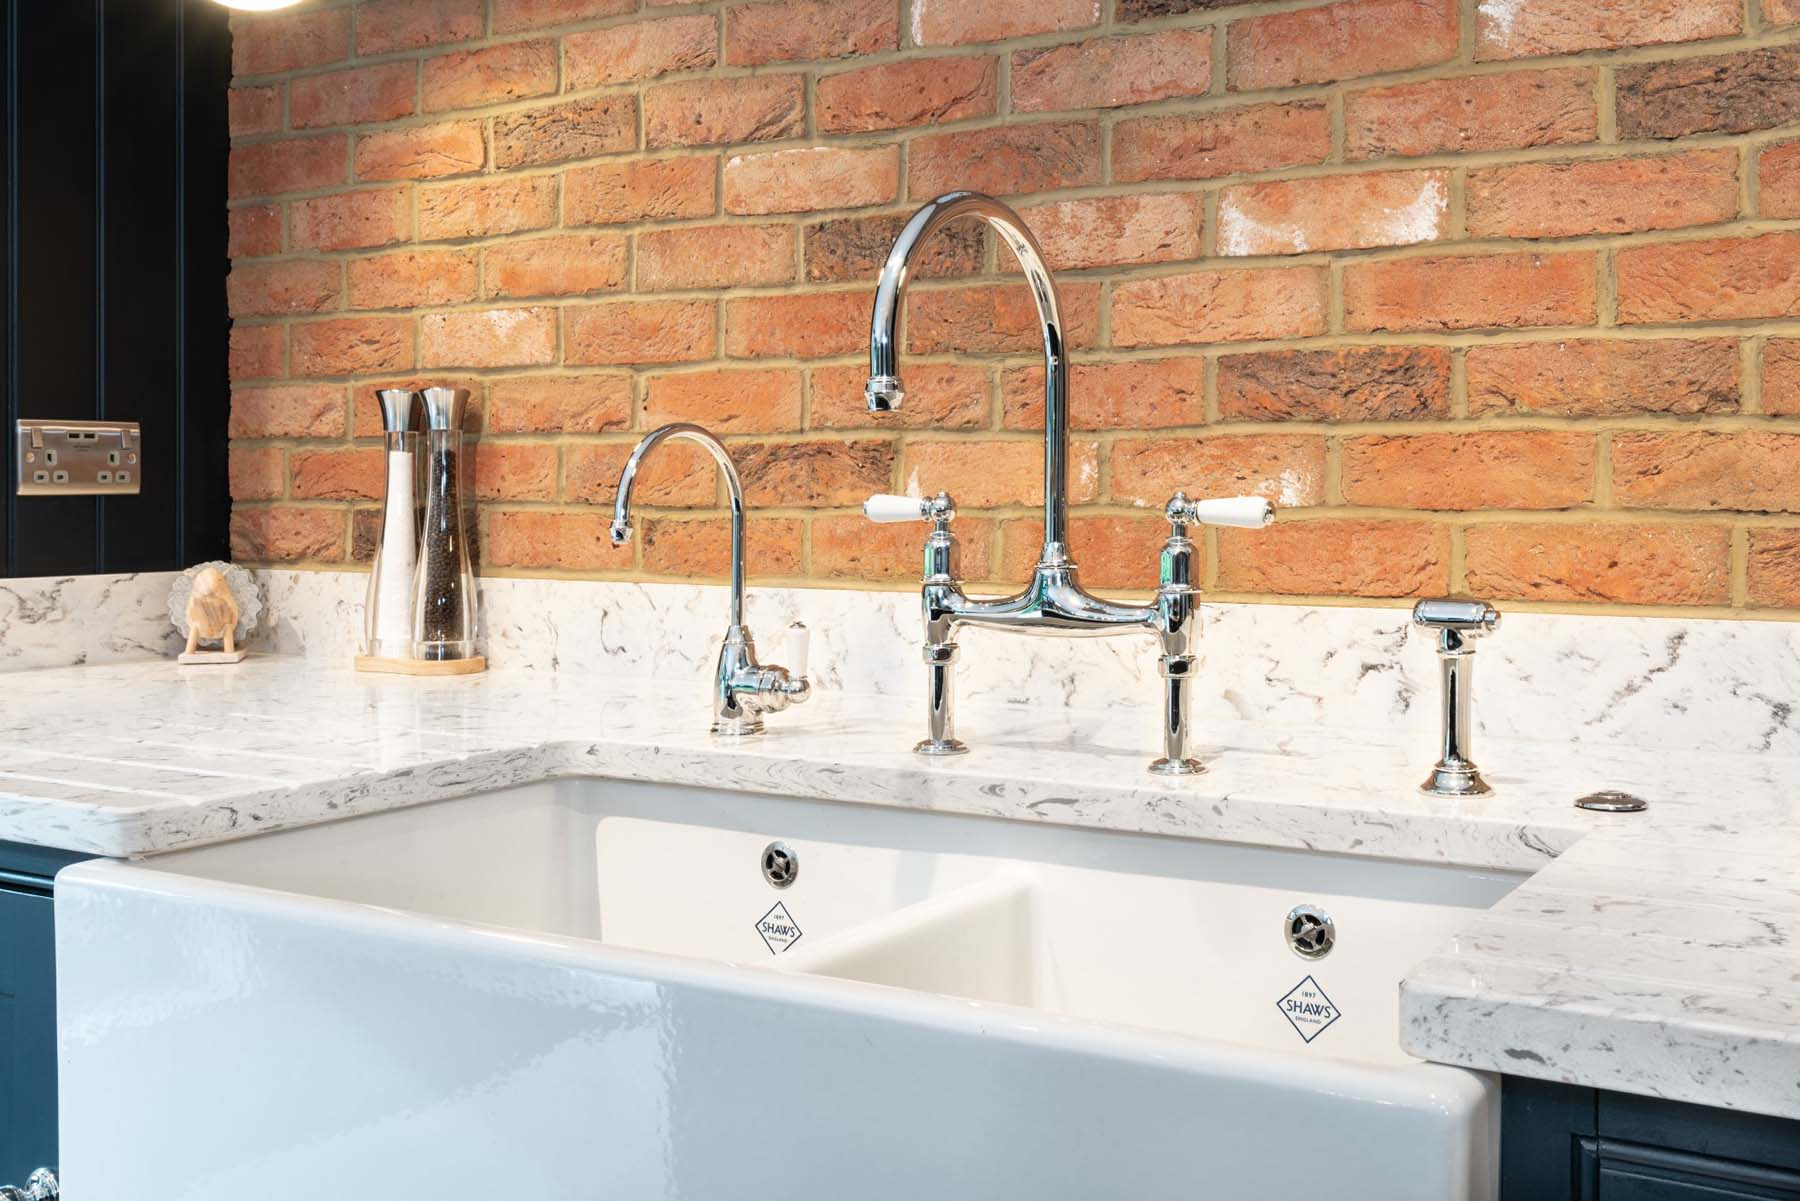 White farmhouse double sink with marble countertops, chrome faucets and a red brick wall.